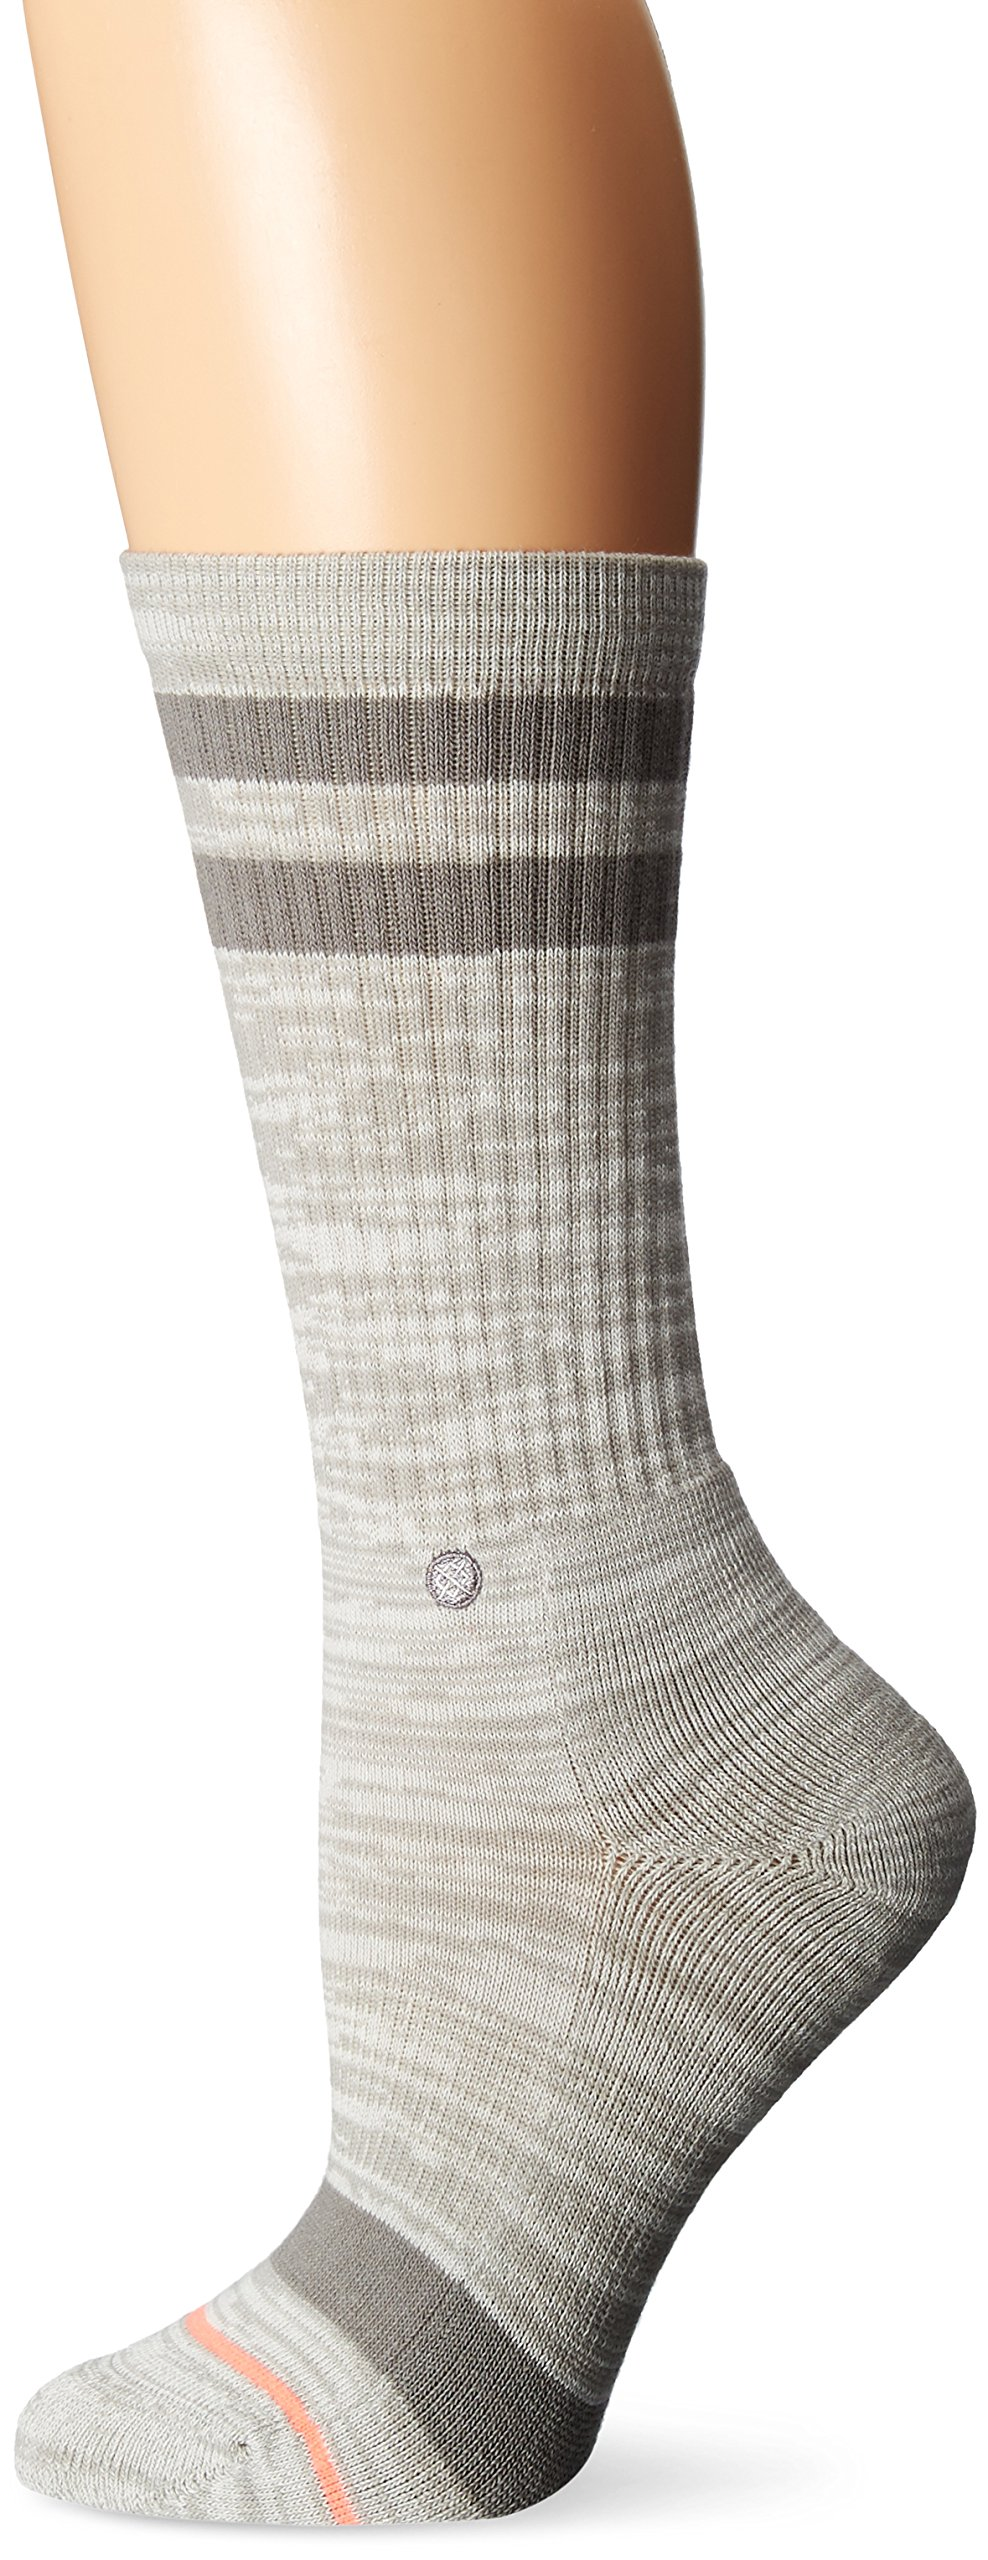 Stance Women's Uncommon Classic Crew Sock, Grey, Medium